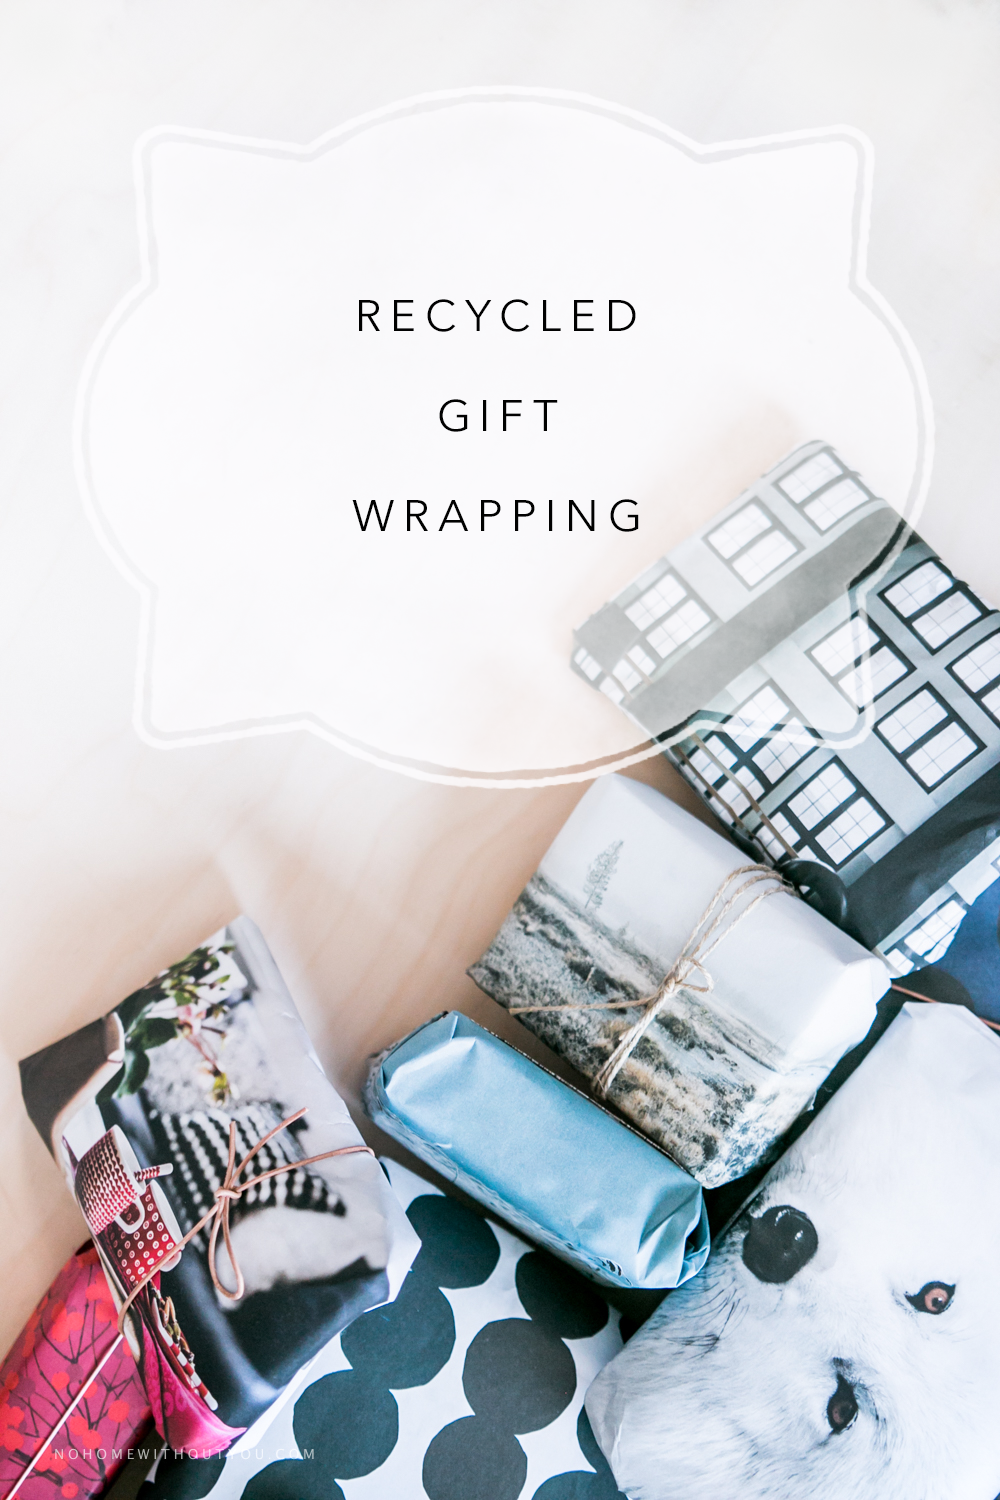 Recycled Christmas gift wrapping (6 of 10)